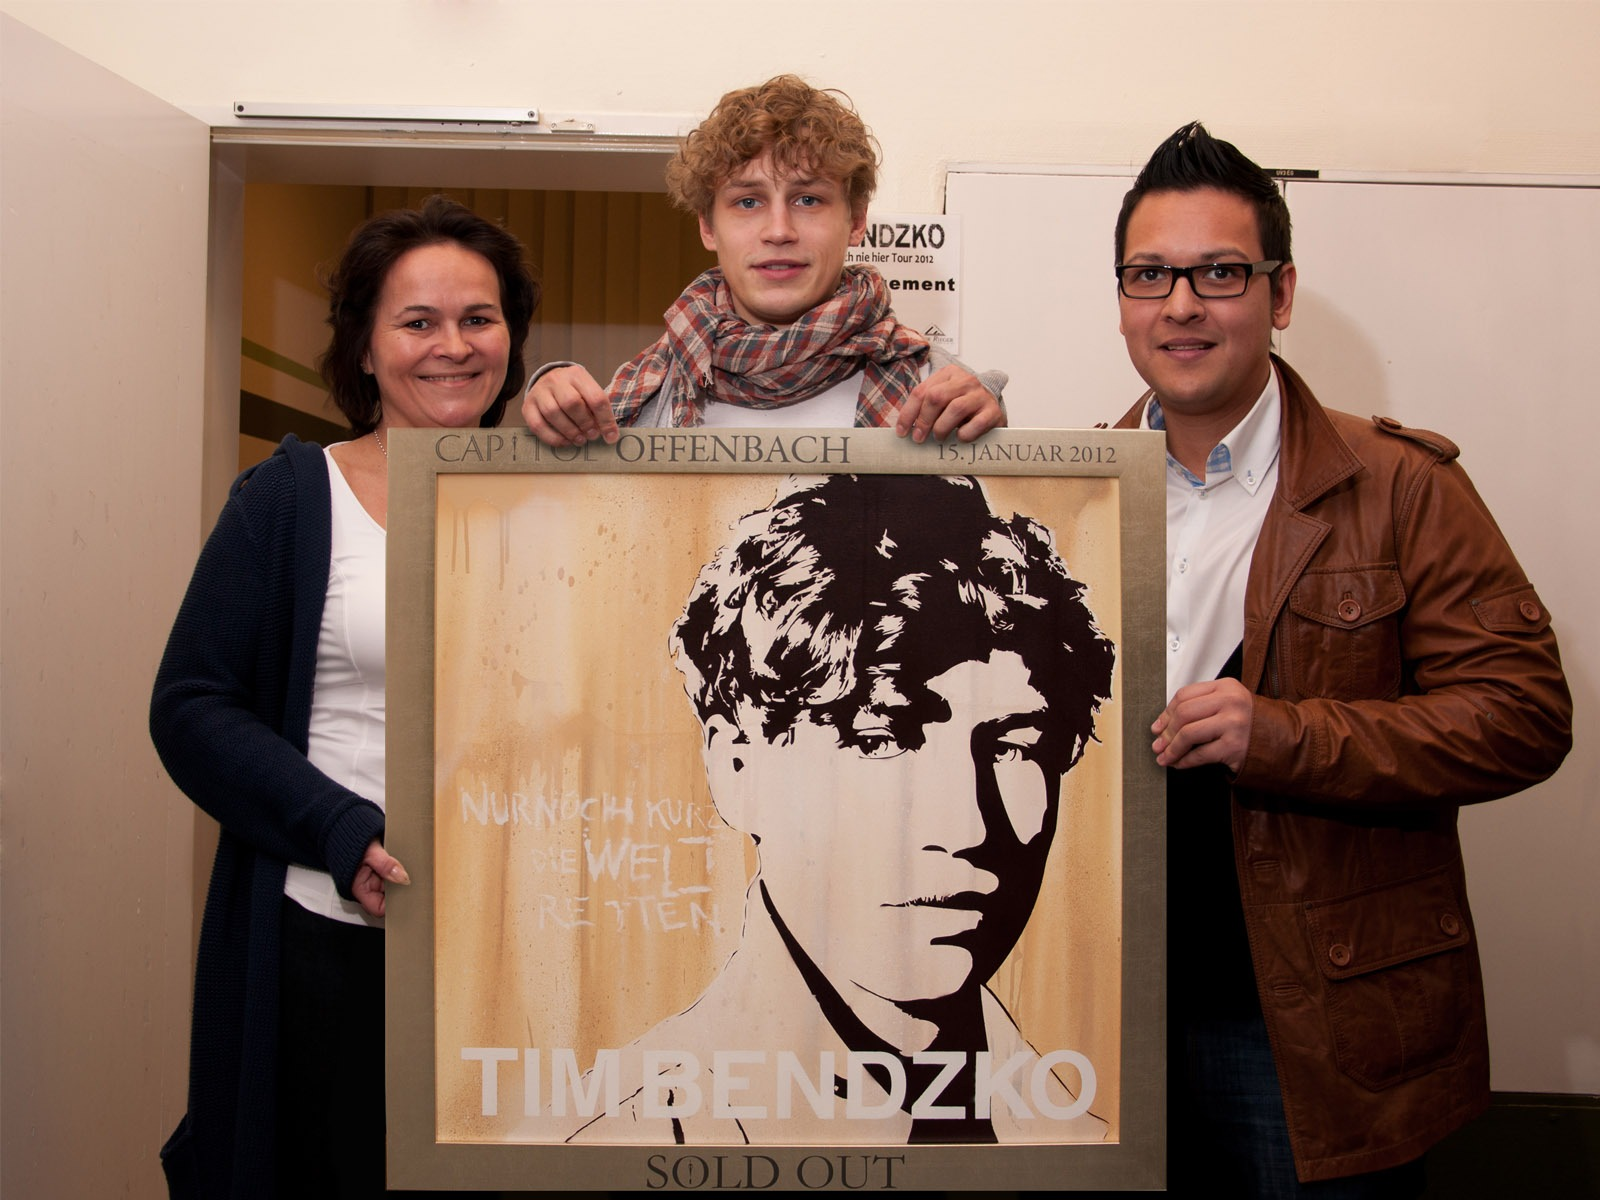 graffitiauftrag-graffitikuenstler-artmos4-sold-out-award-tim-bendzko-stadthalle-offenbach-leinwand-graffiti